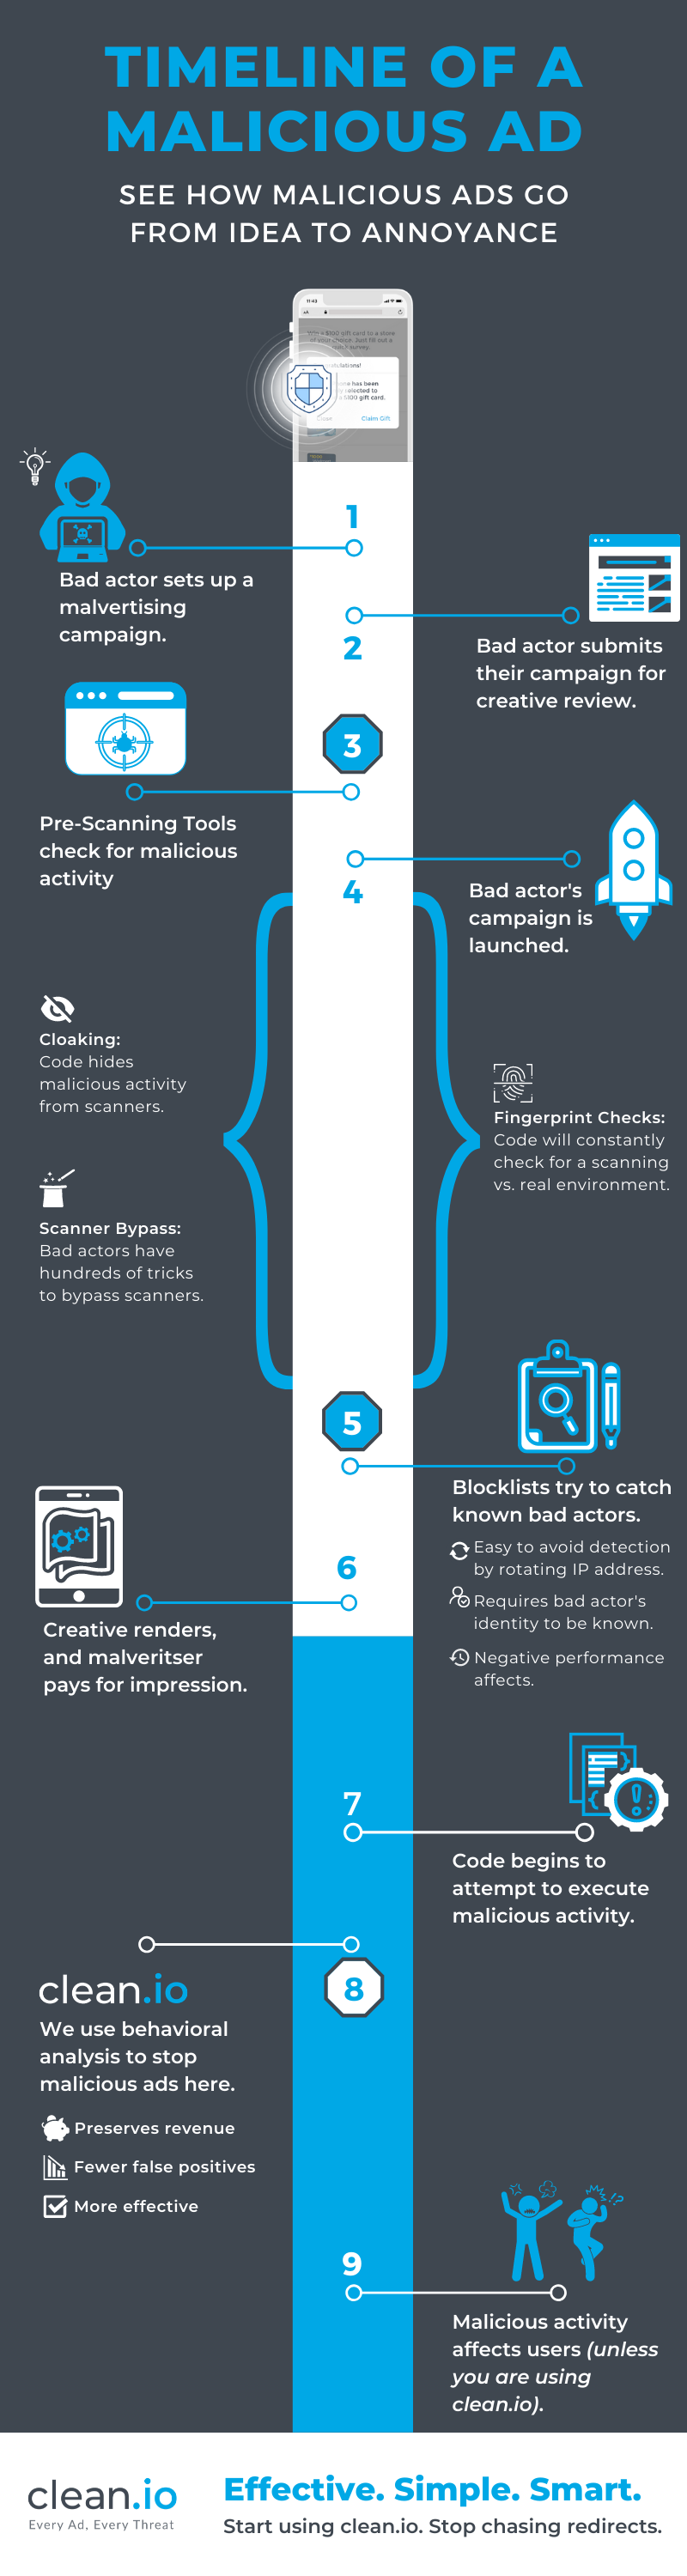 Clean.io-Publisher-Infographic-3